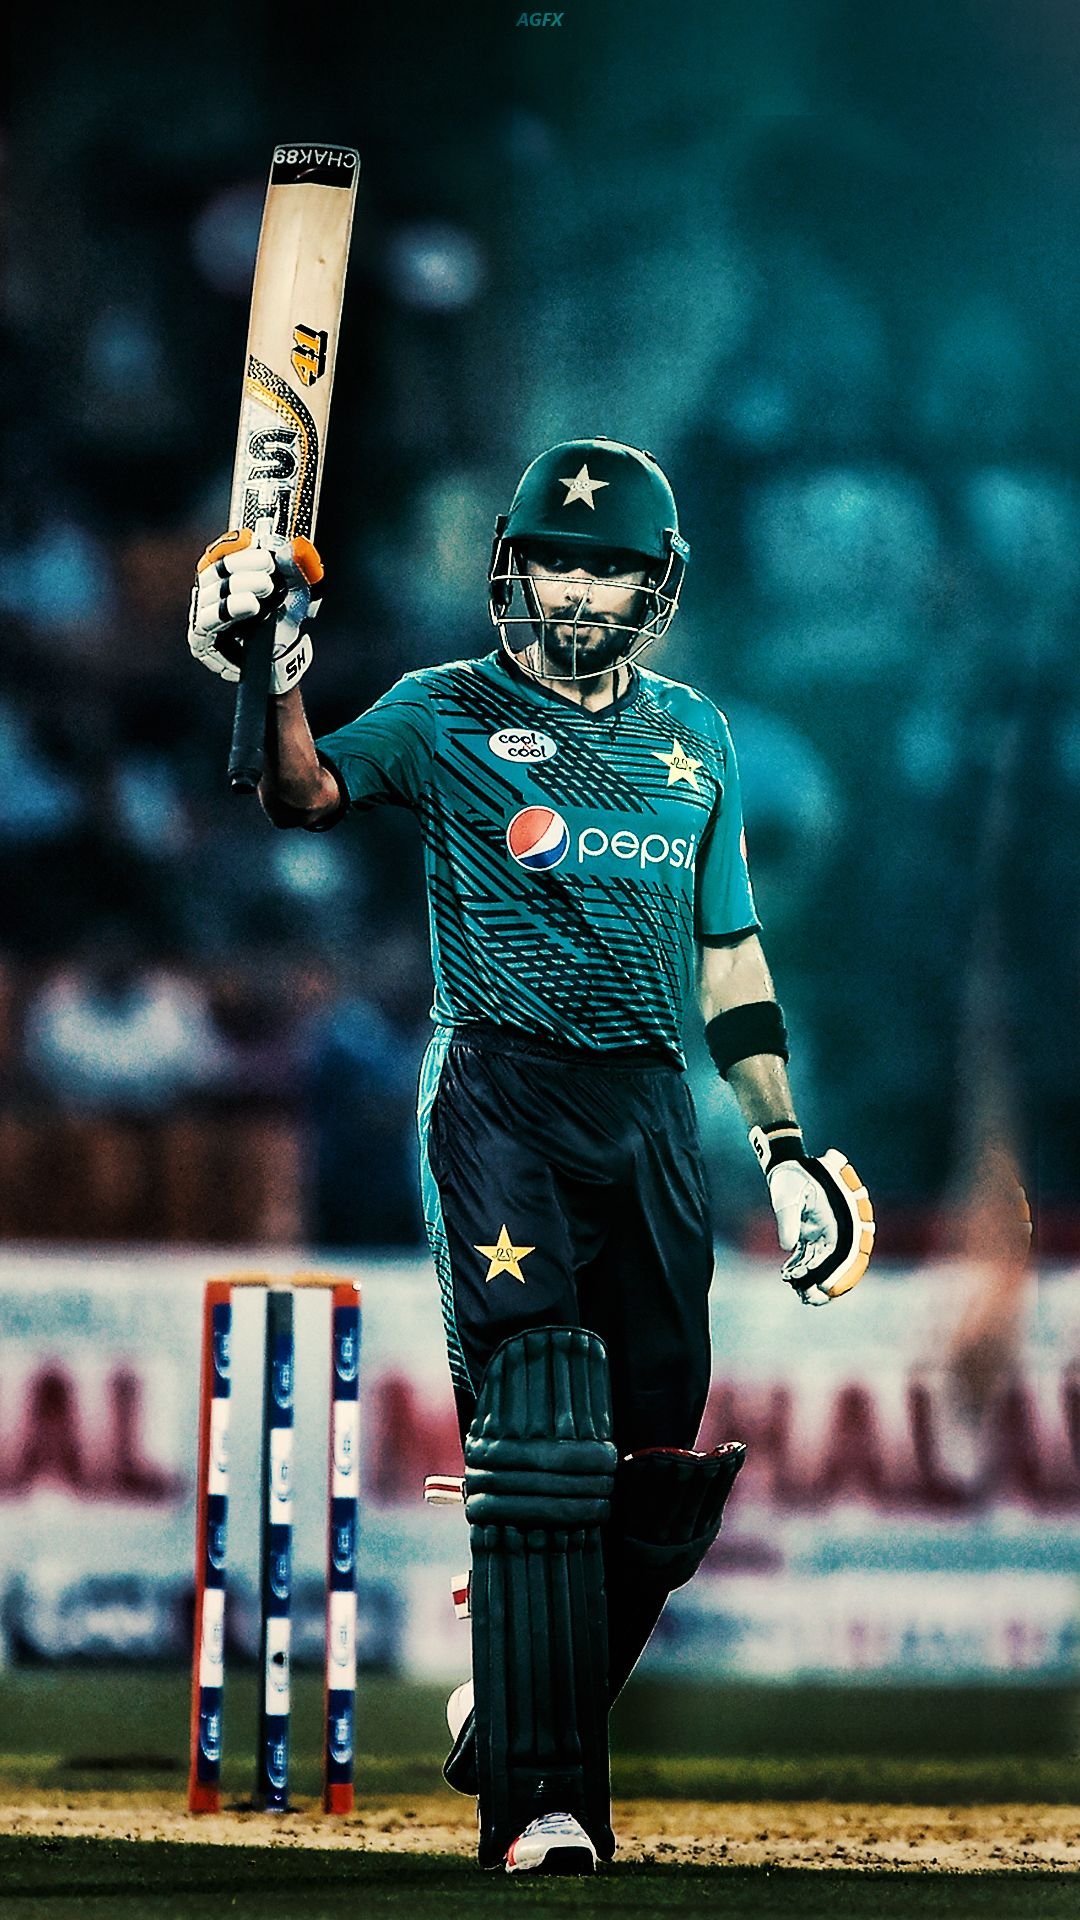 Cricket | Babar Azam | PSL - Wallpaper #PSL #Wallpaper #edit #photoshop # Cricket #icc #ct #pakistan #art #artist #editing #photoedit #wallpaper ...